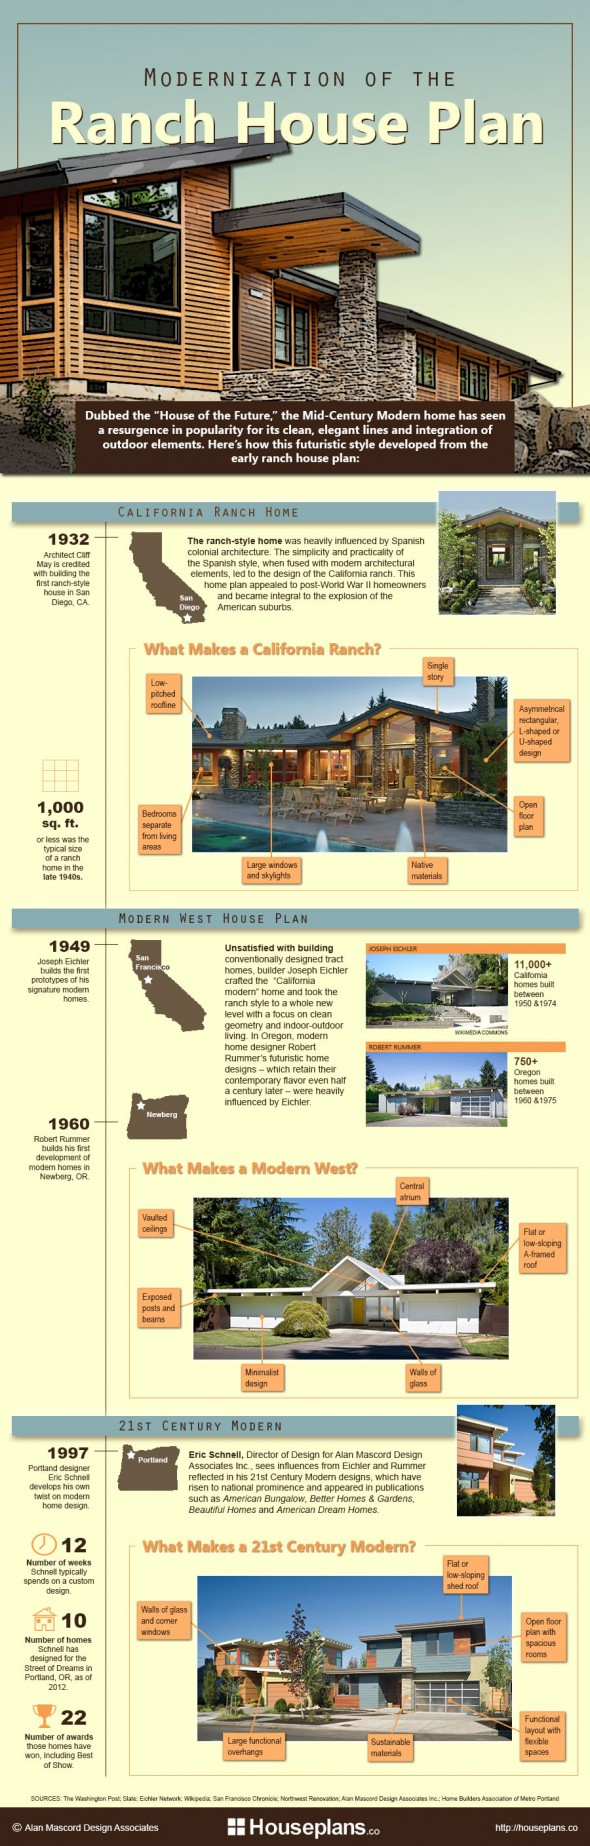 modernization-of-ranch-house-plan